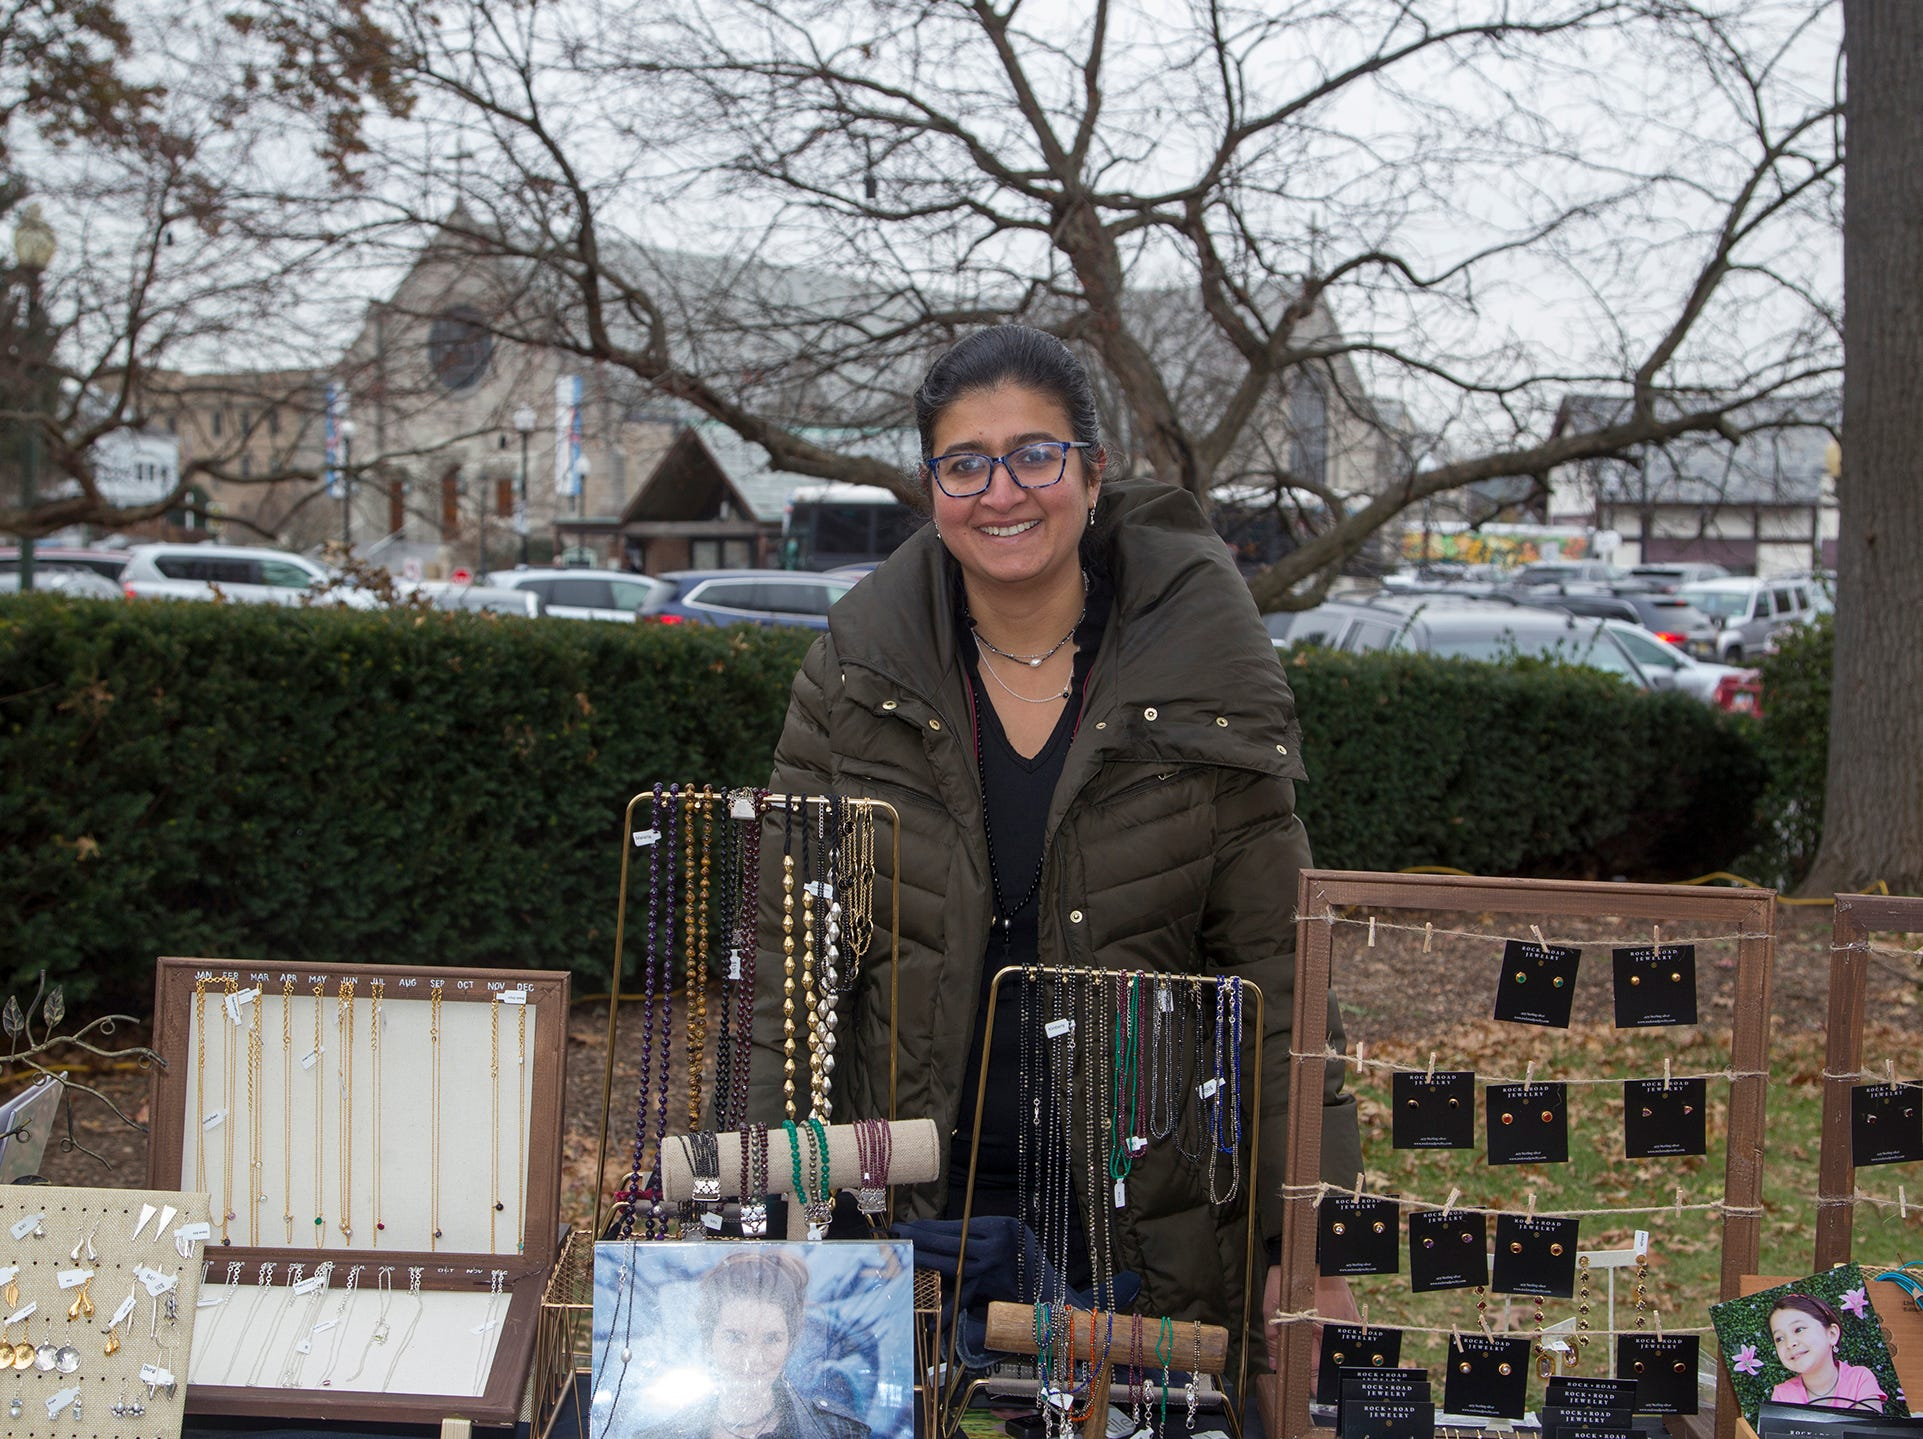 Supriya Kapur of Rock Road Jewlery. The Ridgewood Guild sponsors Winter Fest at Van Neste Park in Ridgewood. 11/24/2018